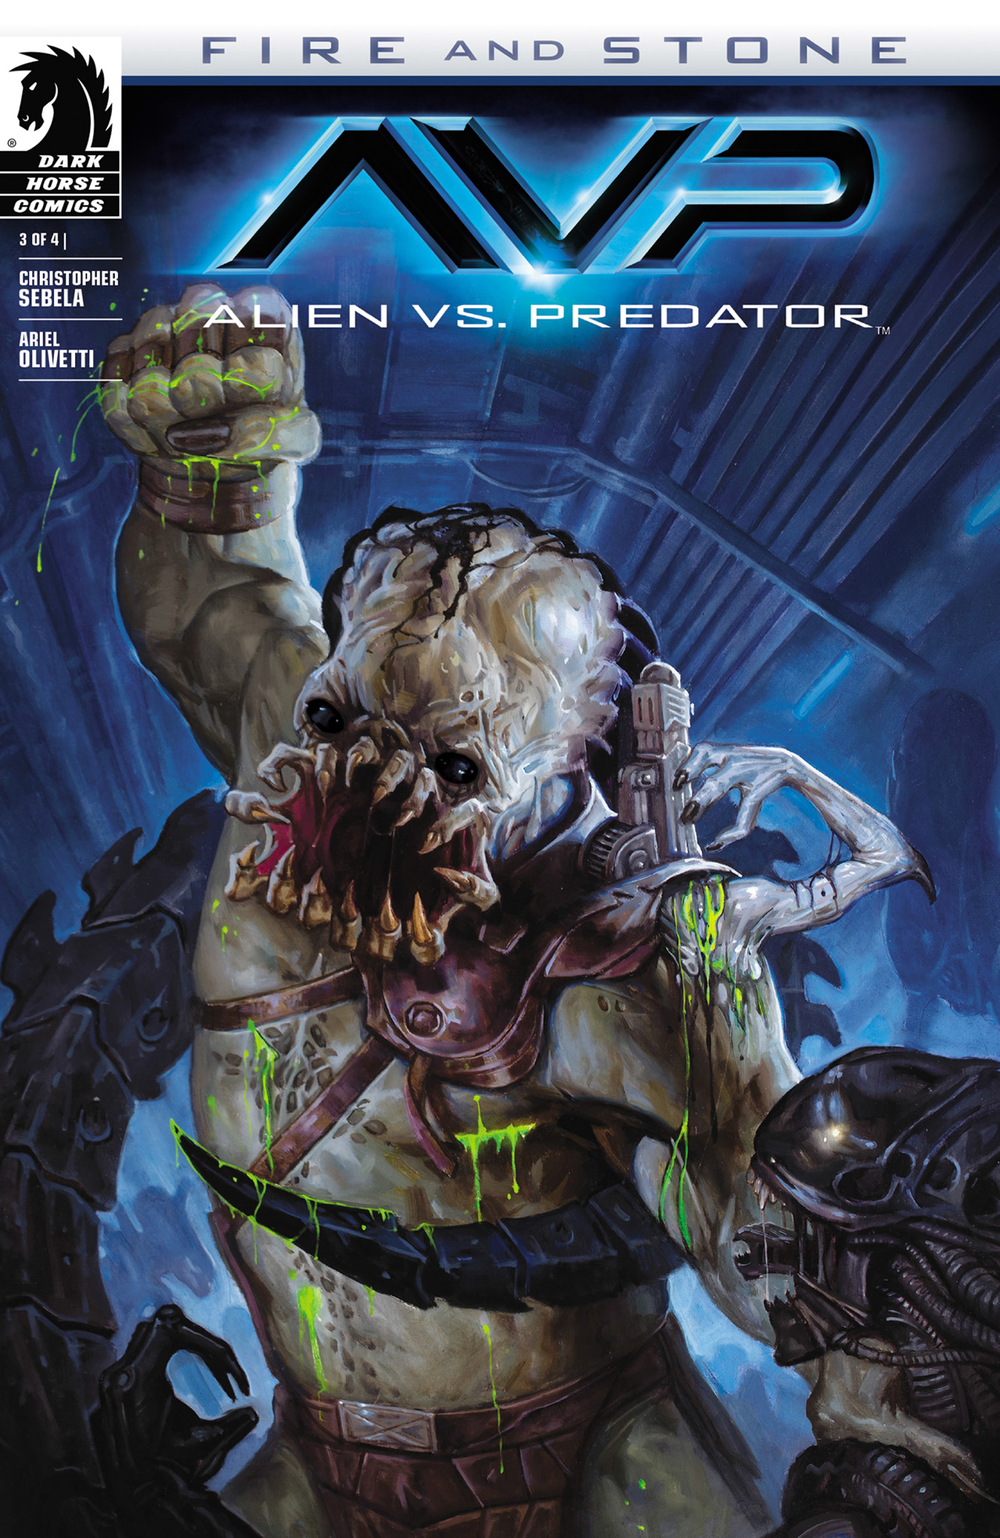 Alien Vs Predator: Fire and Stone #3